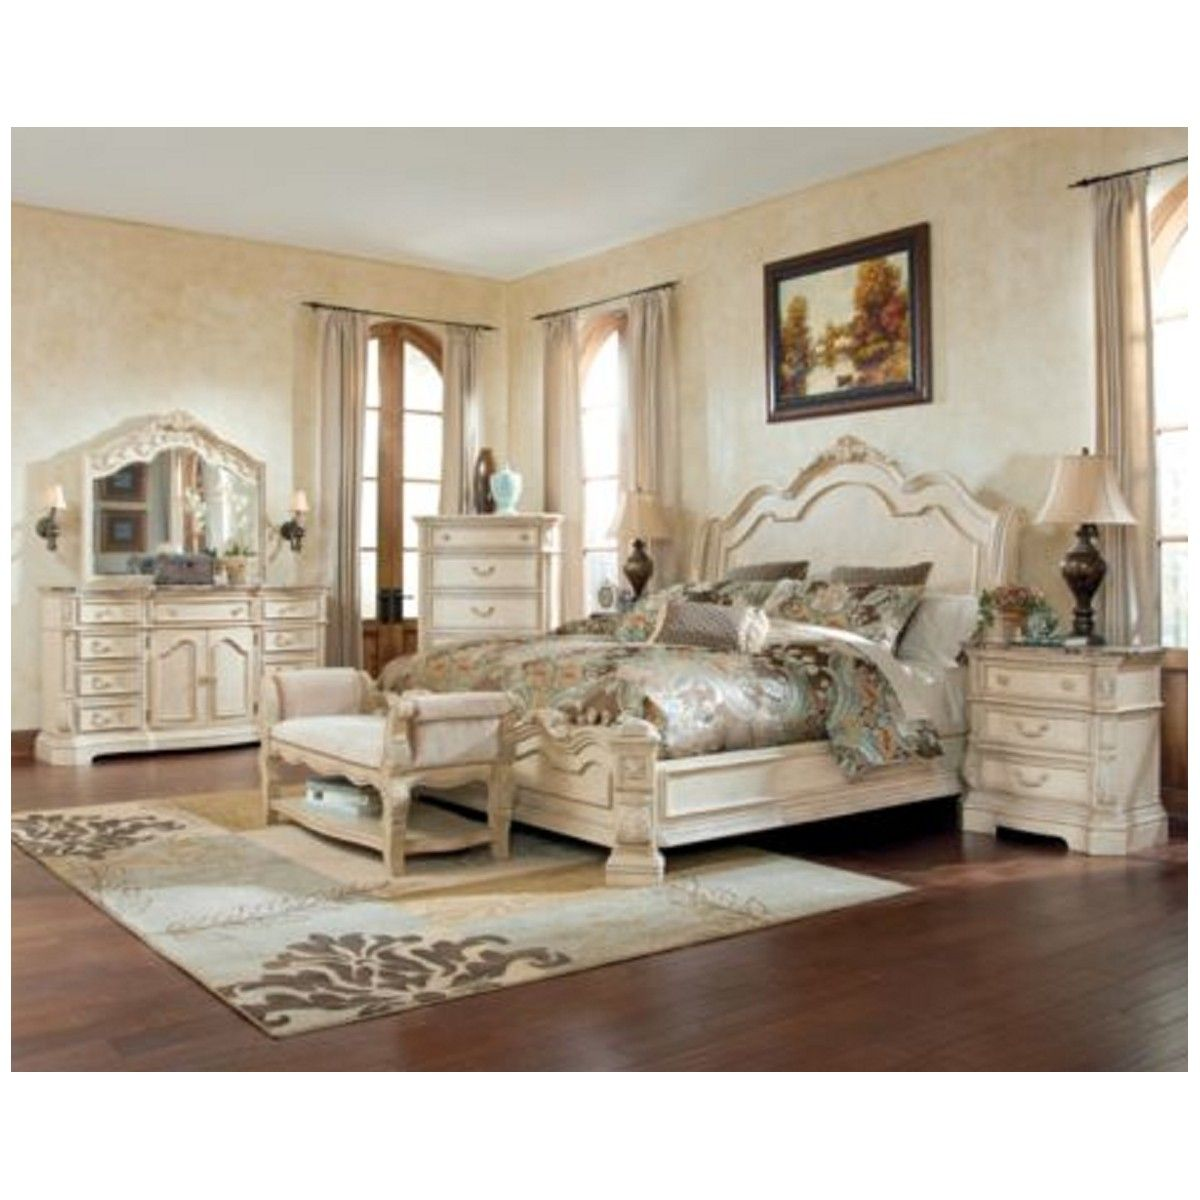 Best White Ashley Furniture Bedroom Sets With Images White 400 x 300